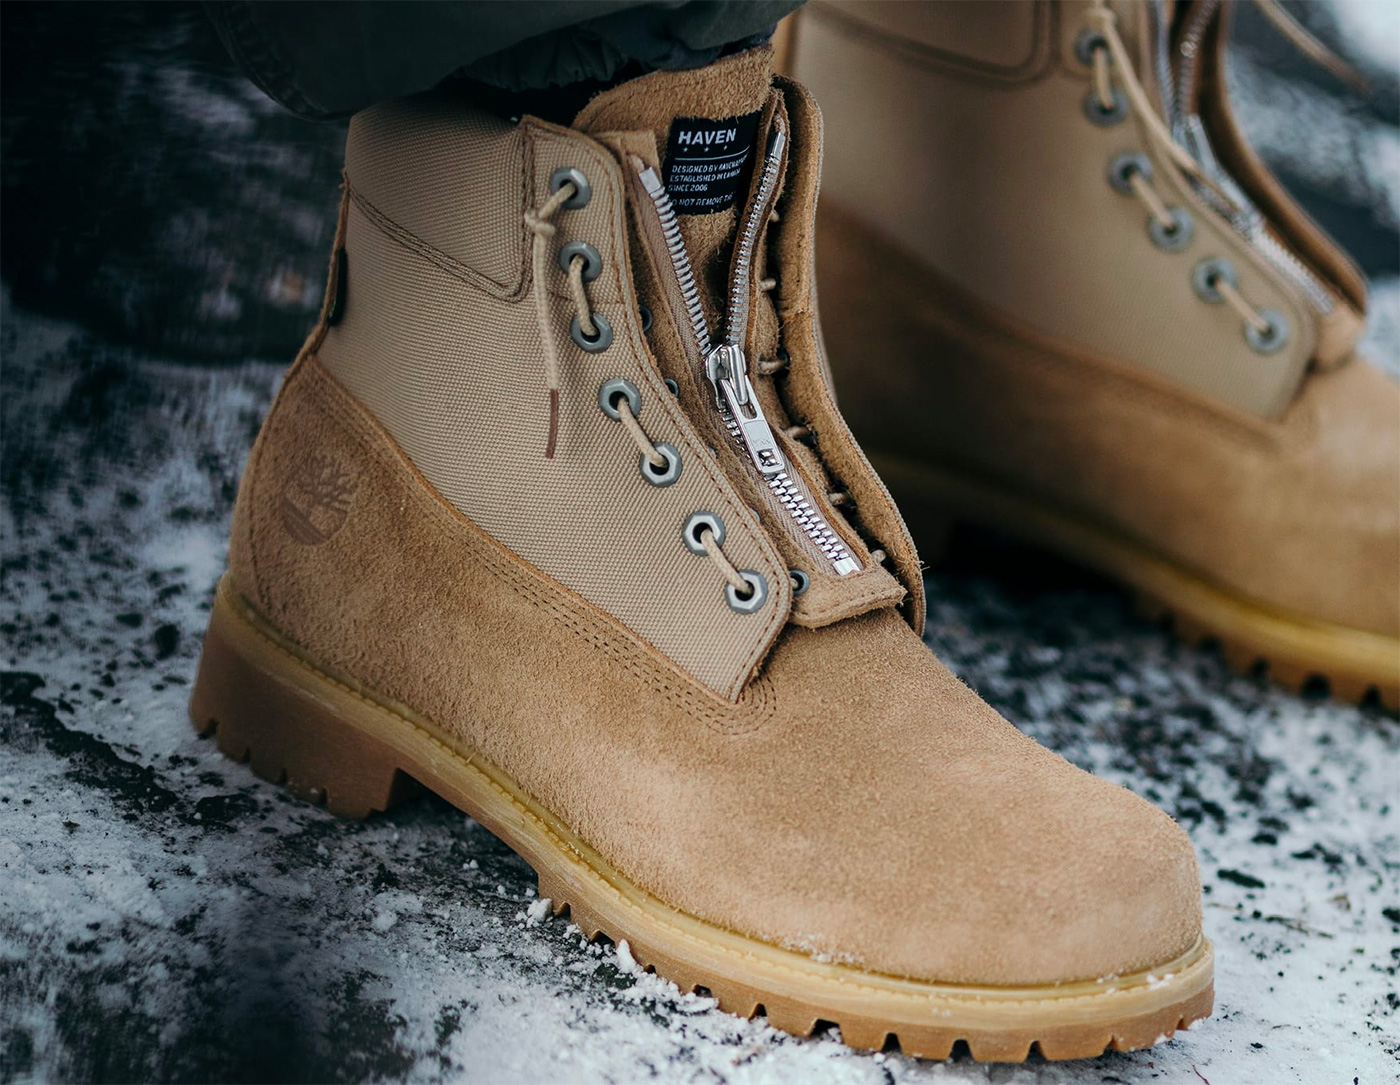 Haven x Timberland Drop a Classic Gore-Tex Boot at werd.com